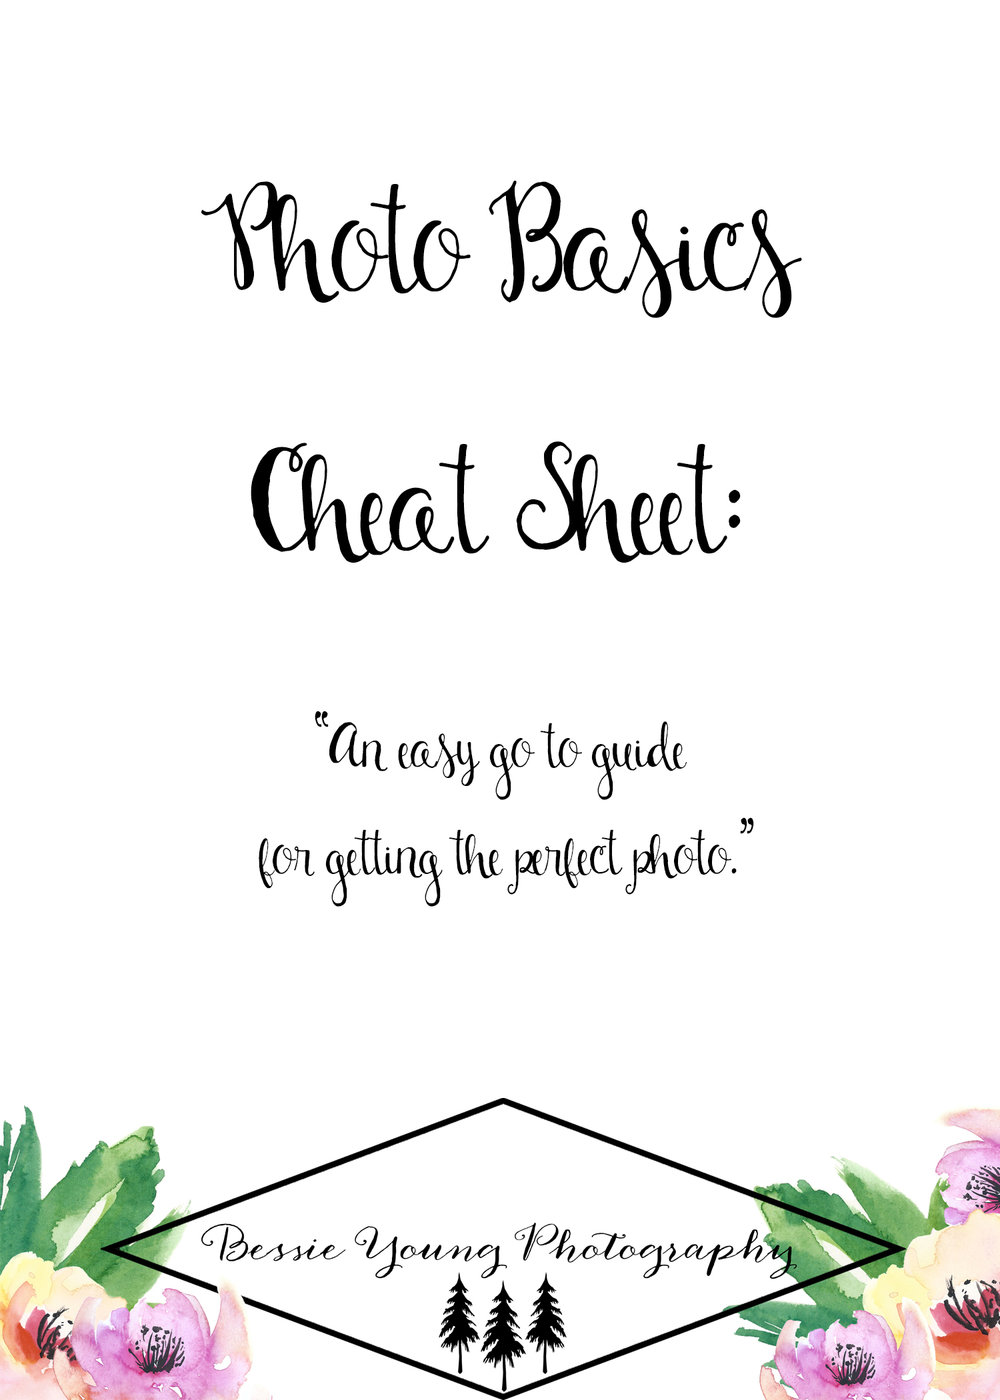 Photo basics cheat sheet cover.jpg